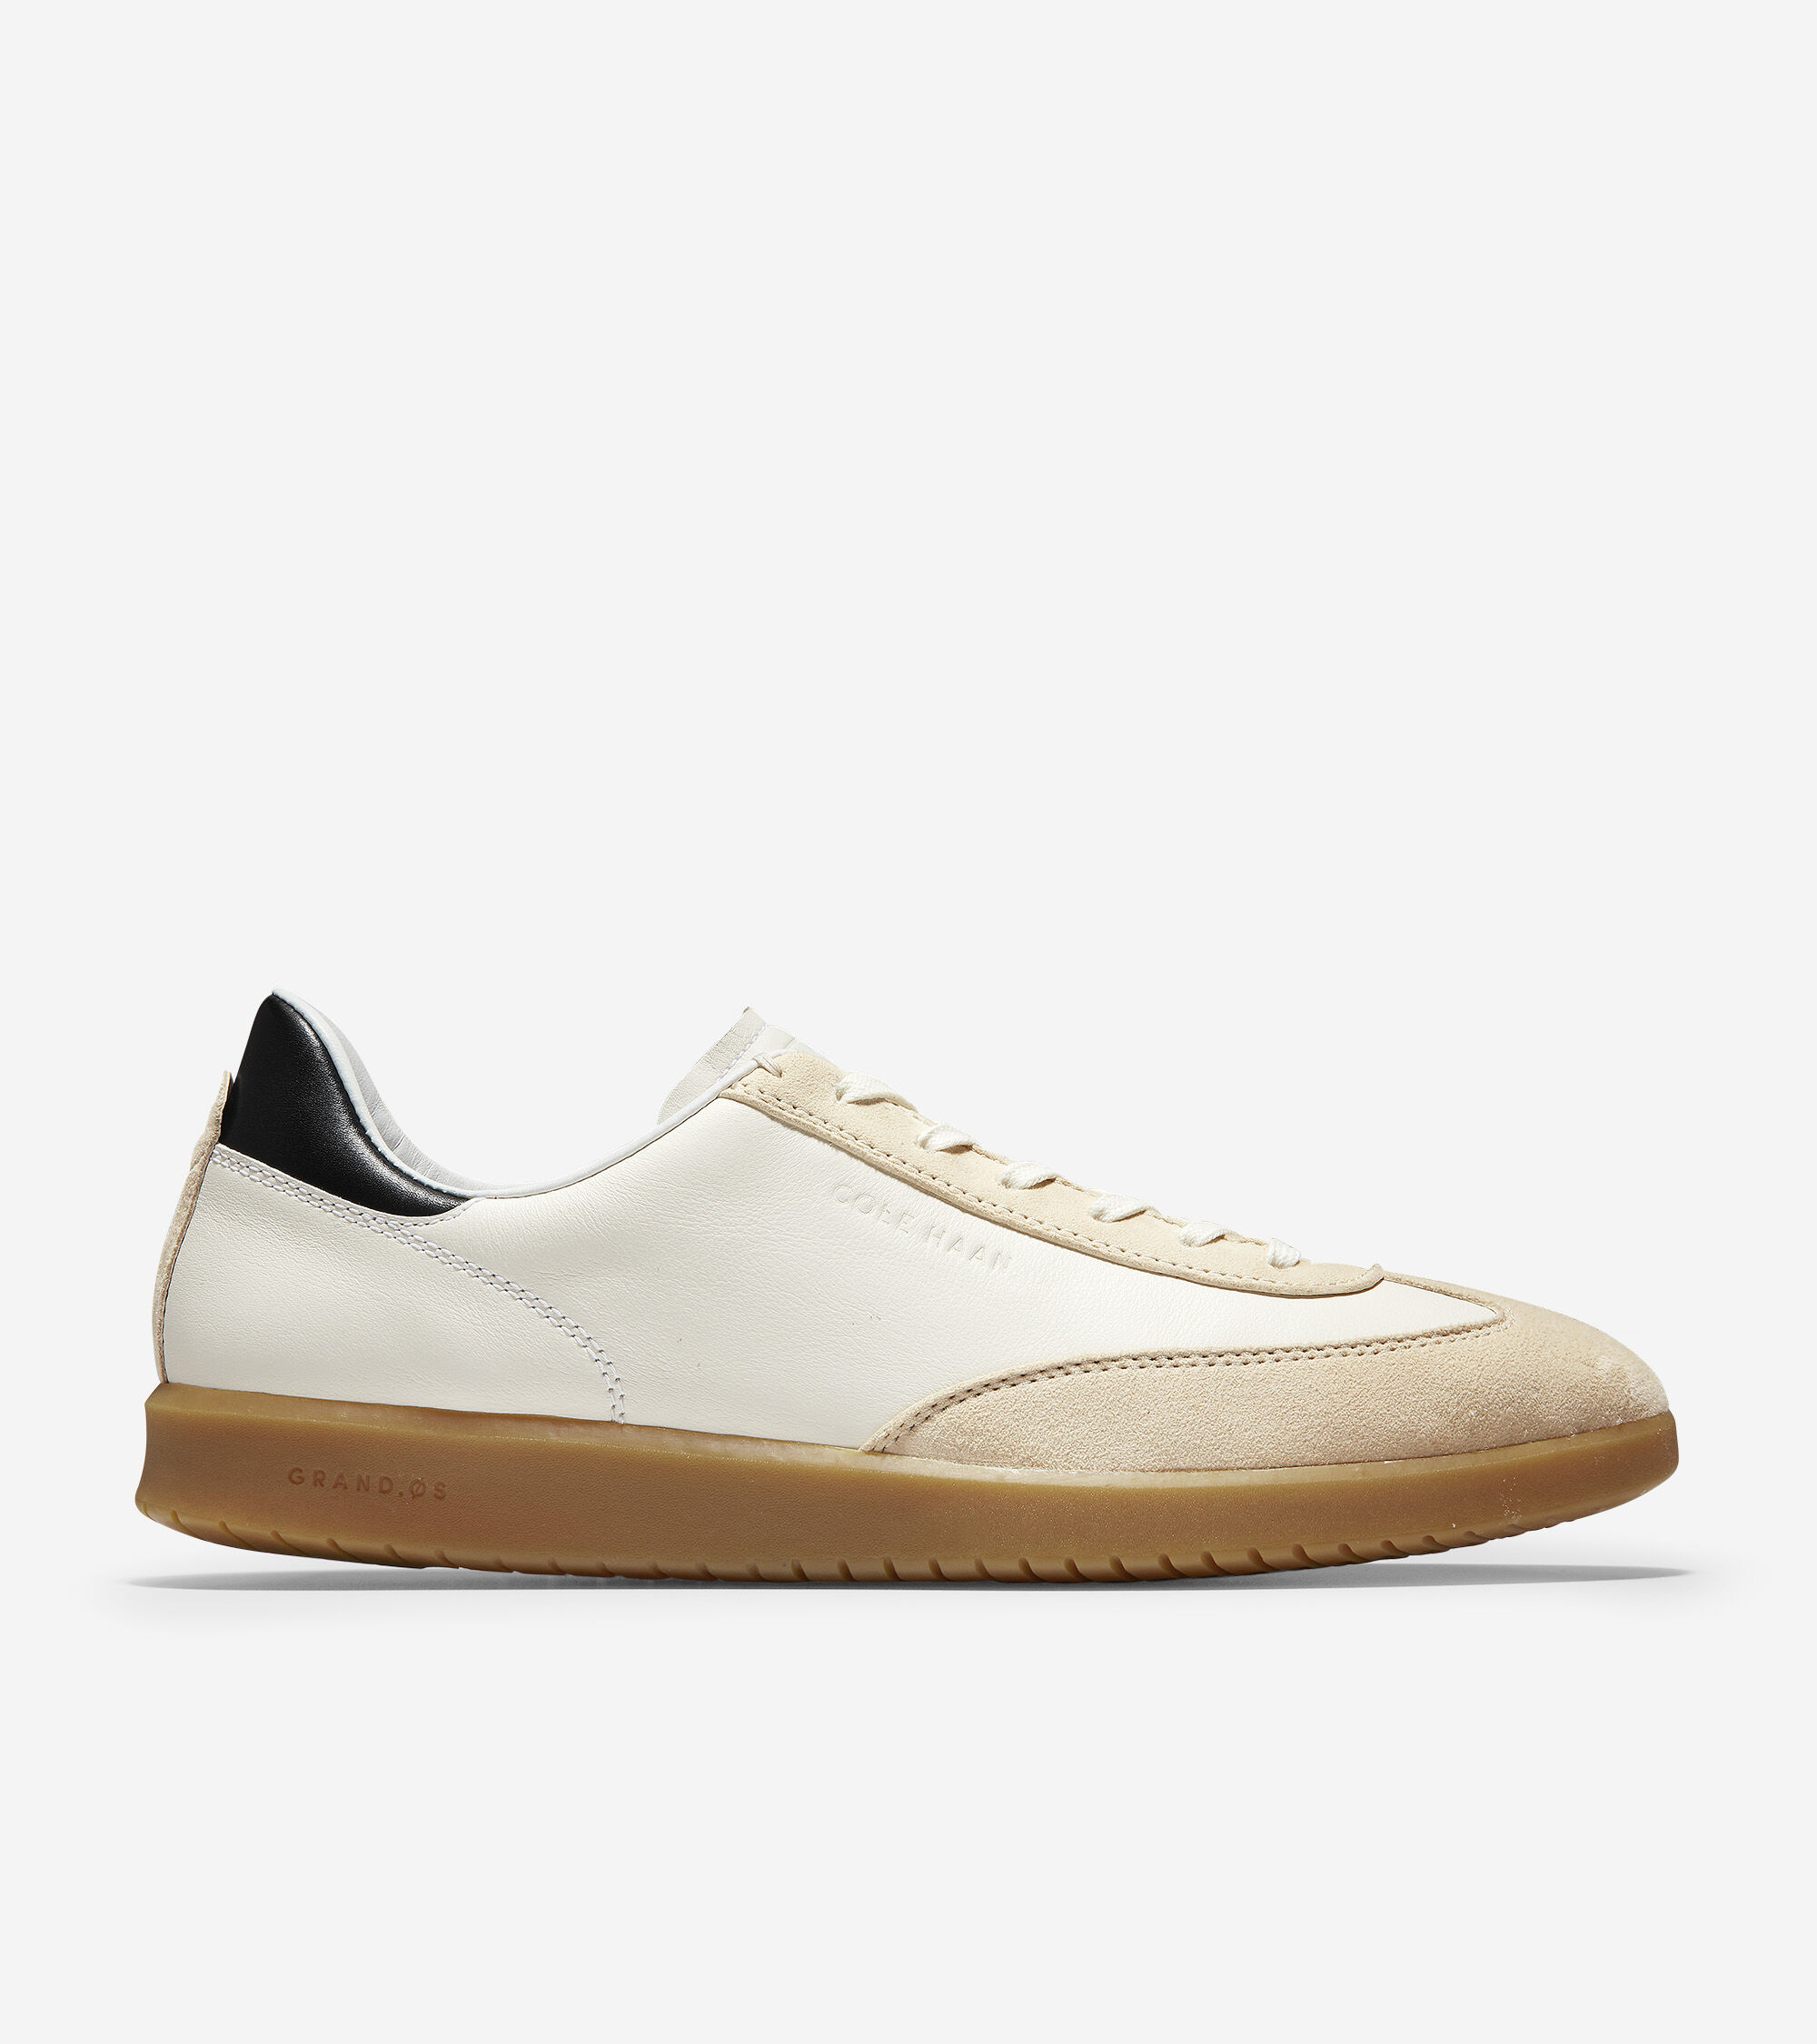 Sneaker in Ivory Tumbled-Stone Suede